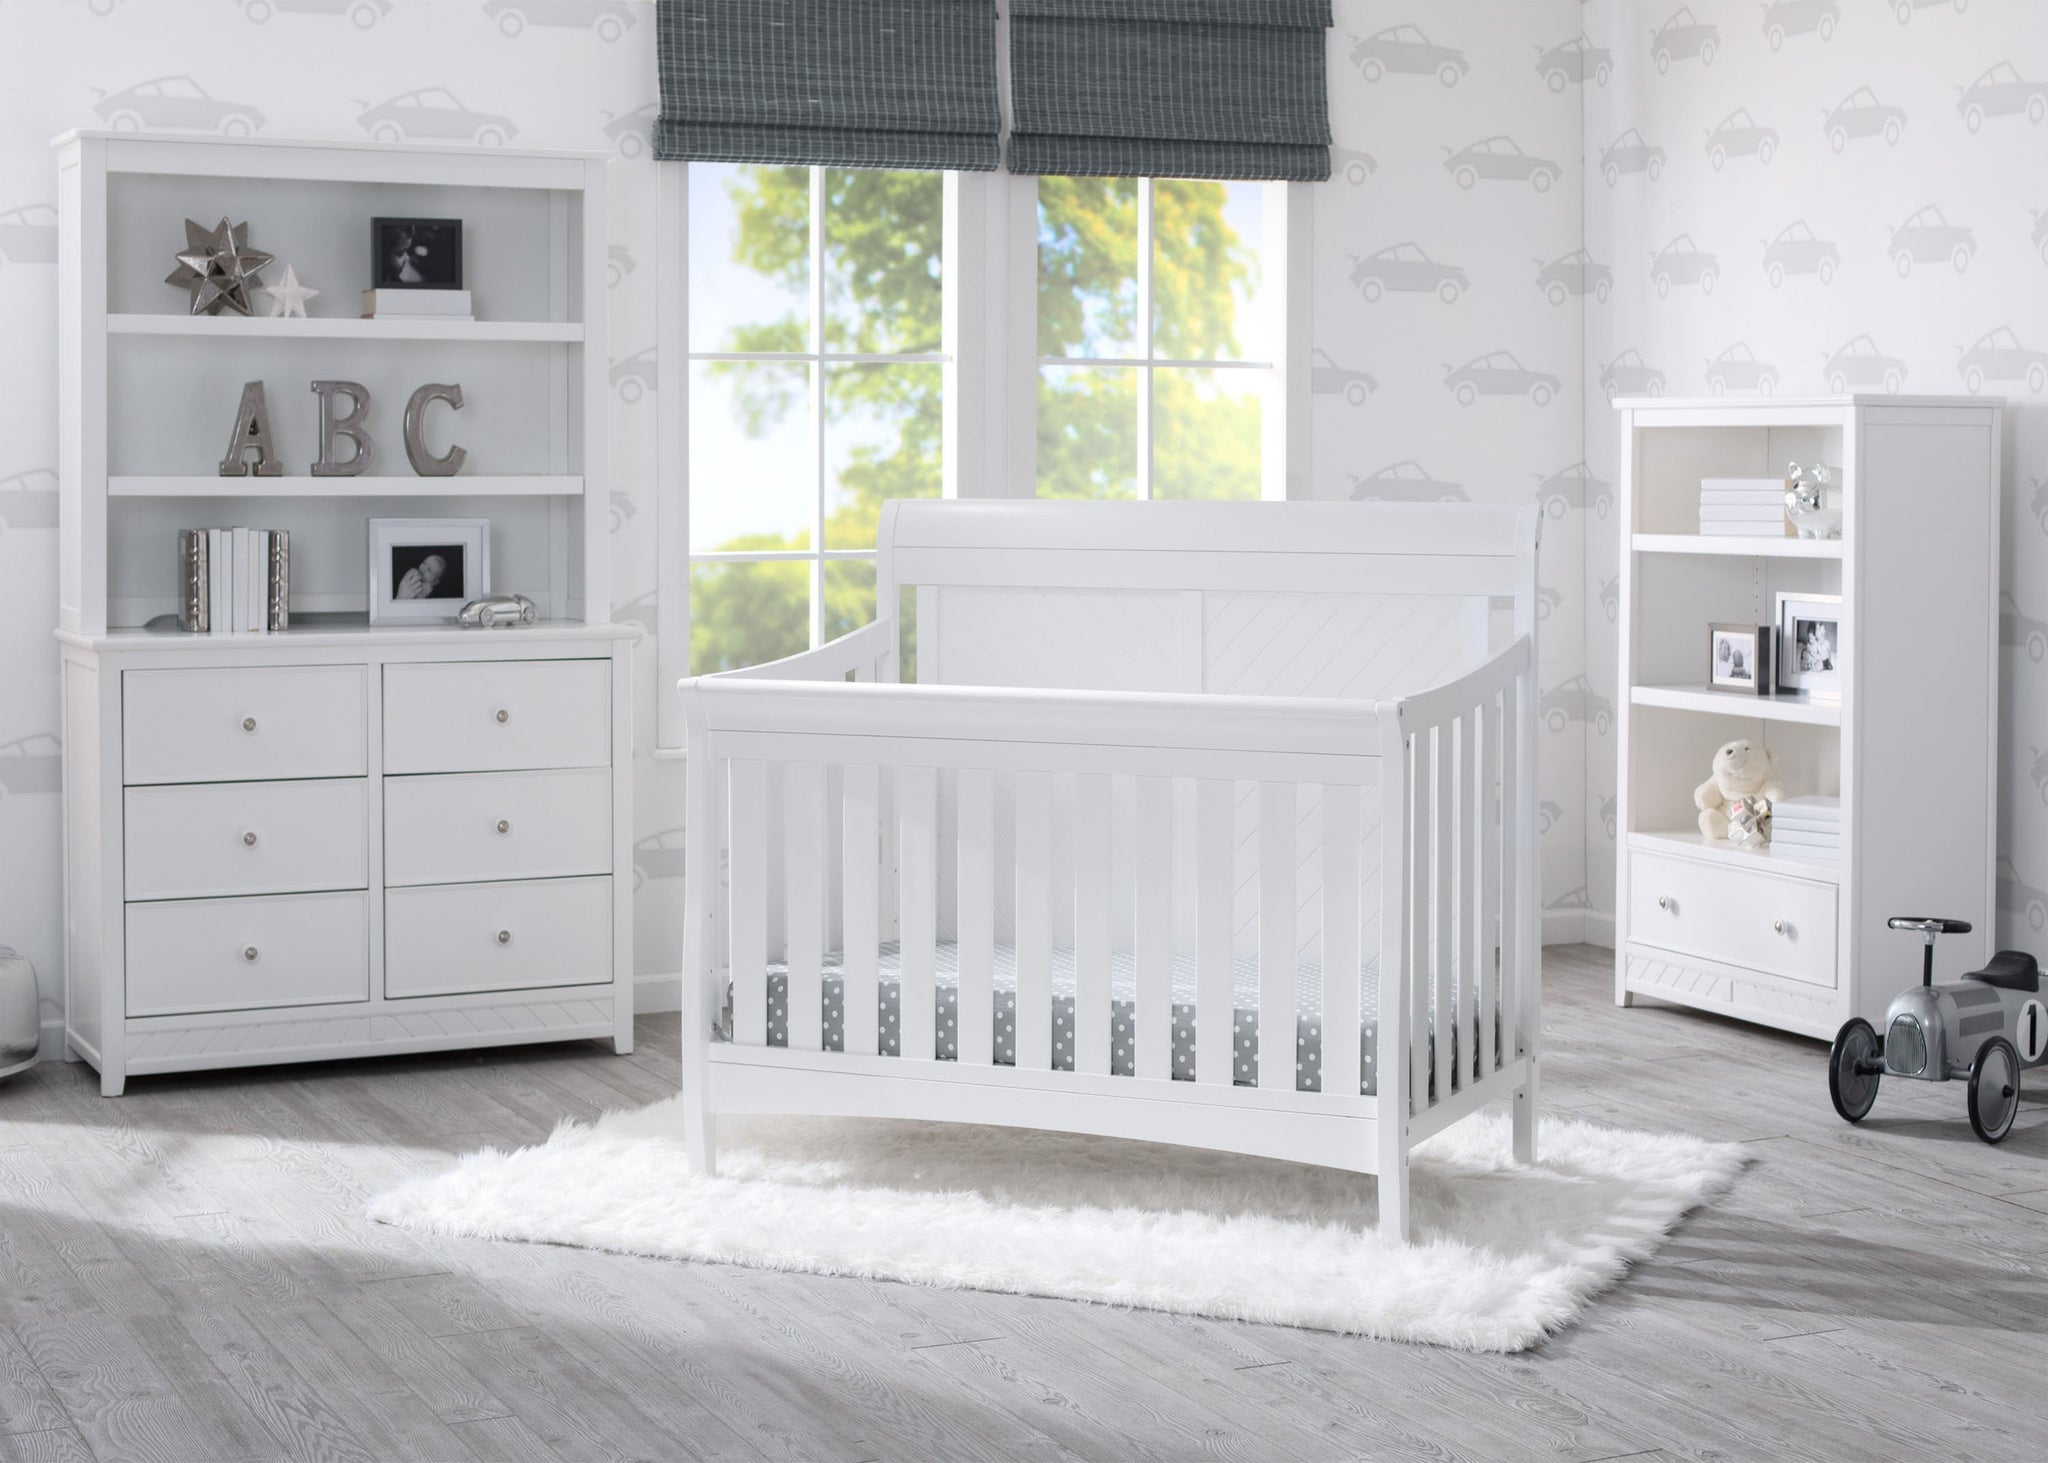 Delta Children Bianca (130) Bennington Elite Sleigh 4-in-1 Convertible Crib (550650), Room, b1b